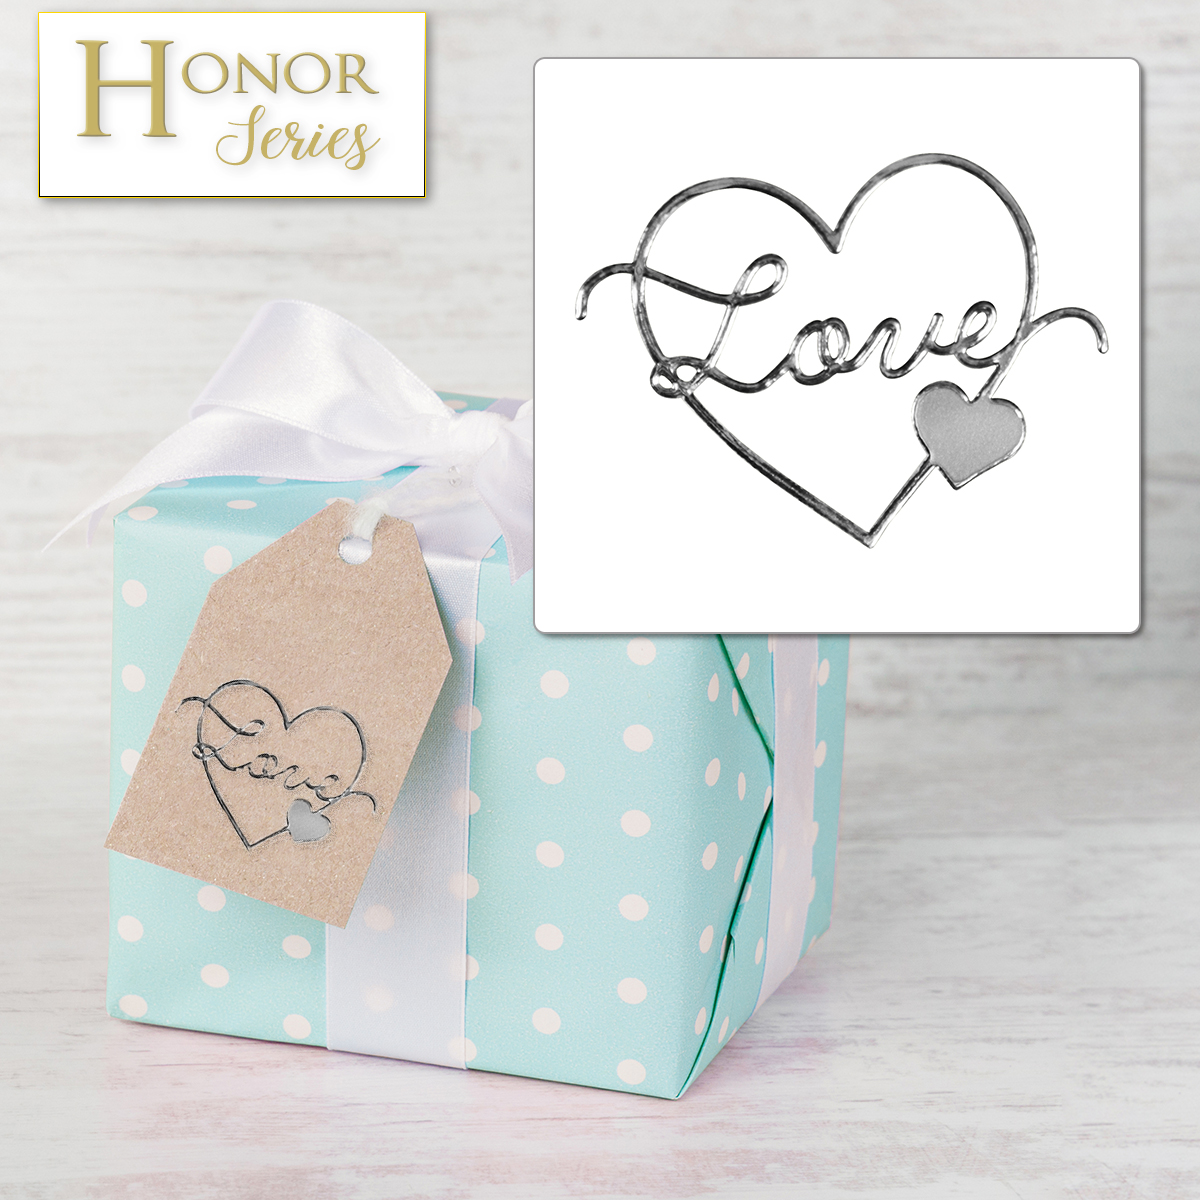 Honor Series - Delicate Touch Silver Love Seals - 25 Count